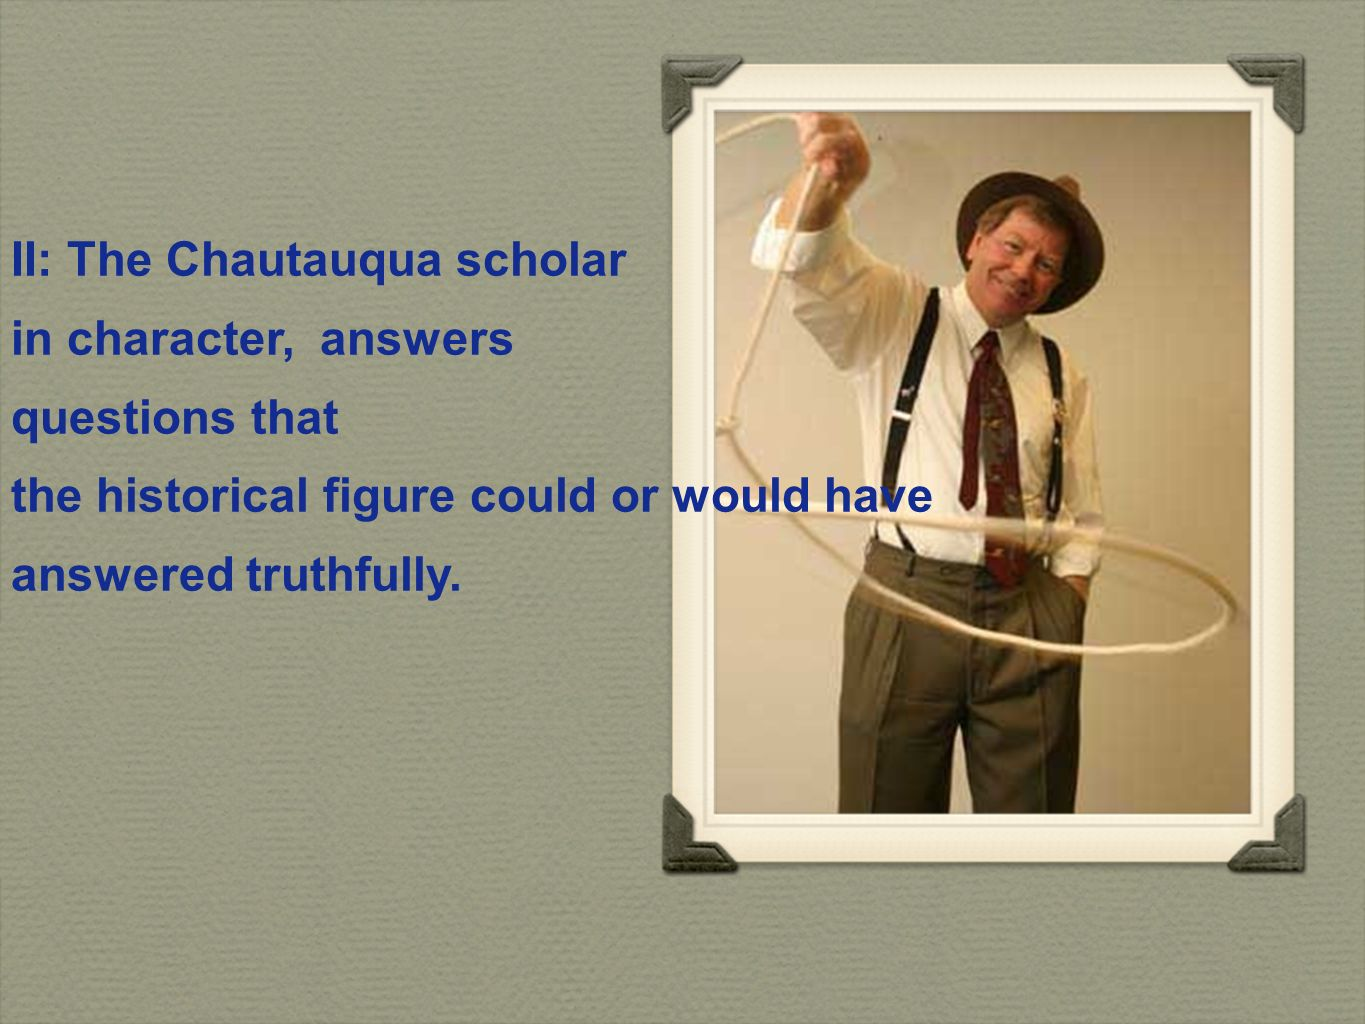 II: The Chautauqua scholar in character, answers questions that the historical figure could or would have answered truthfully.